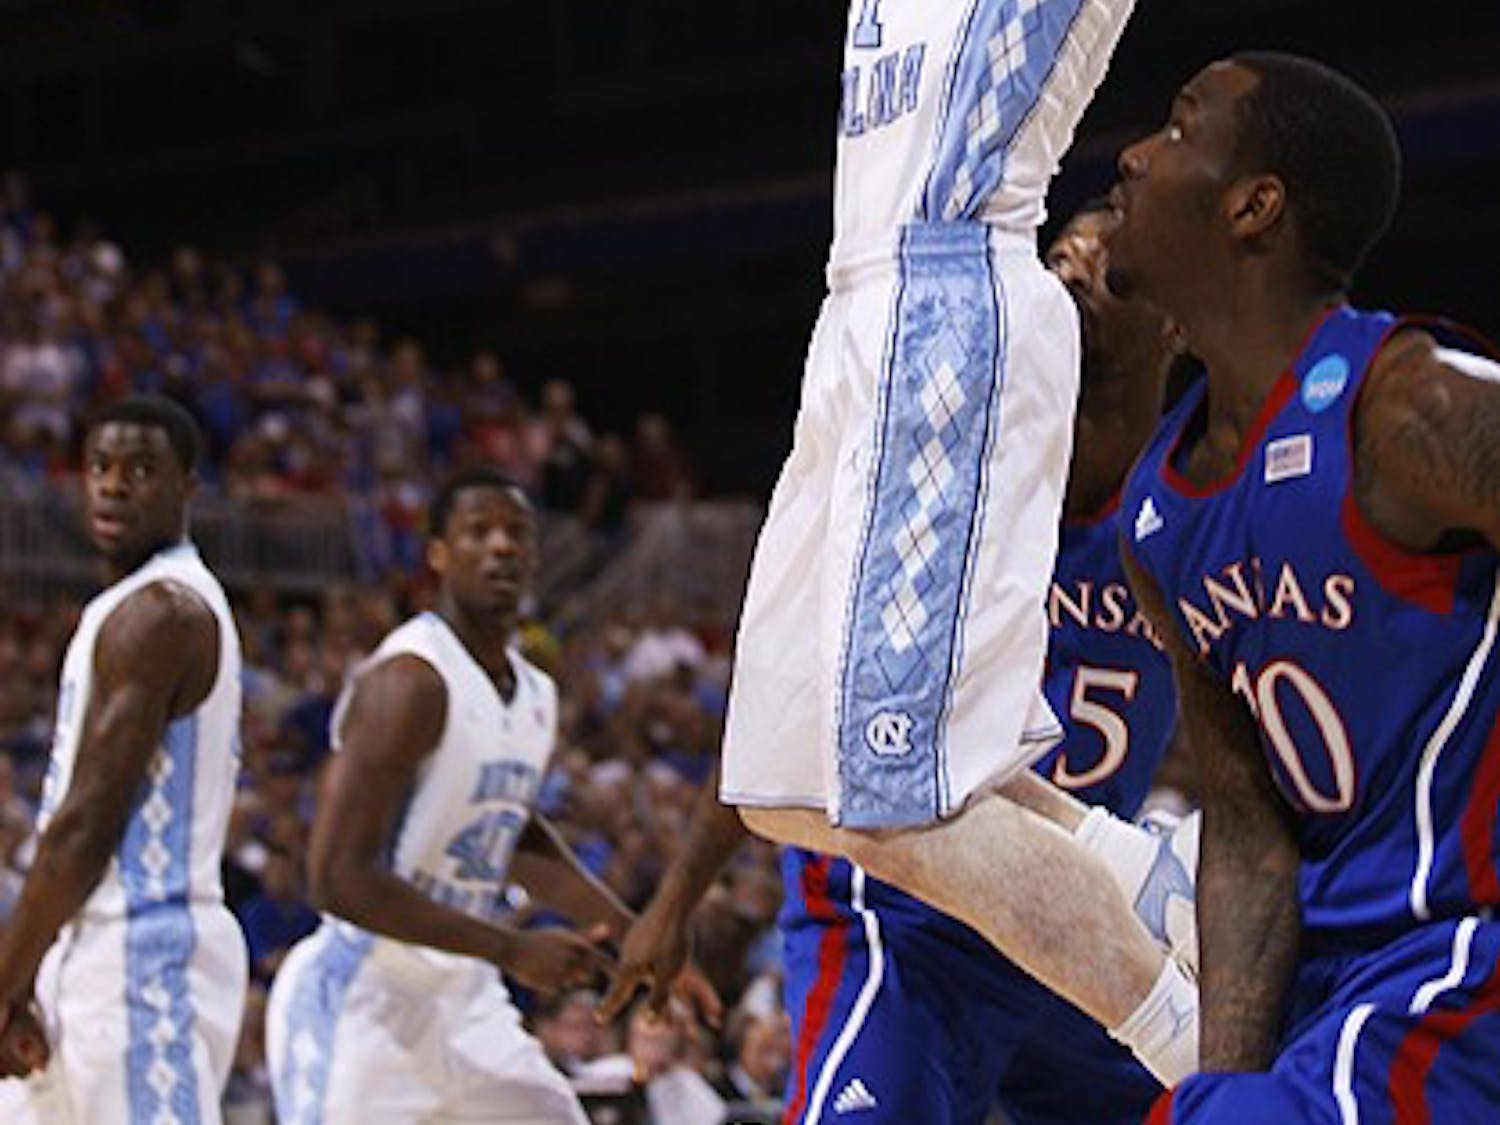 The North Carolina Tar Heels took on the Kansas Jayhawks in the Elite 8 round of the NCAA Tournament on Sunday at the Edward Jones Dome in St. Louis.